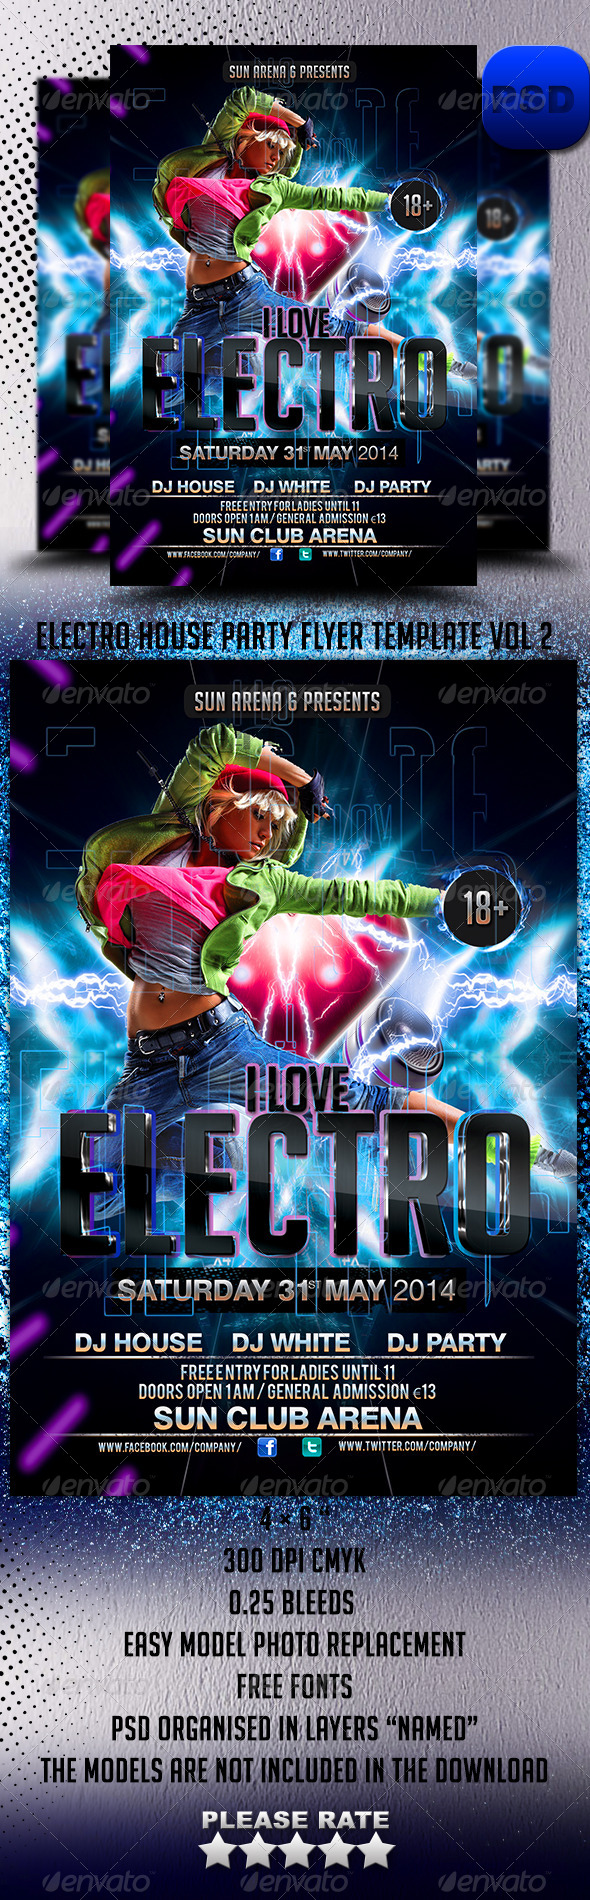 Electro House Party Flyer Template Vol 2 - Events Flyers